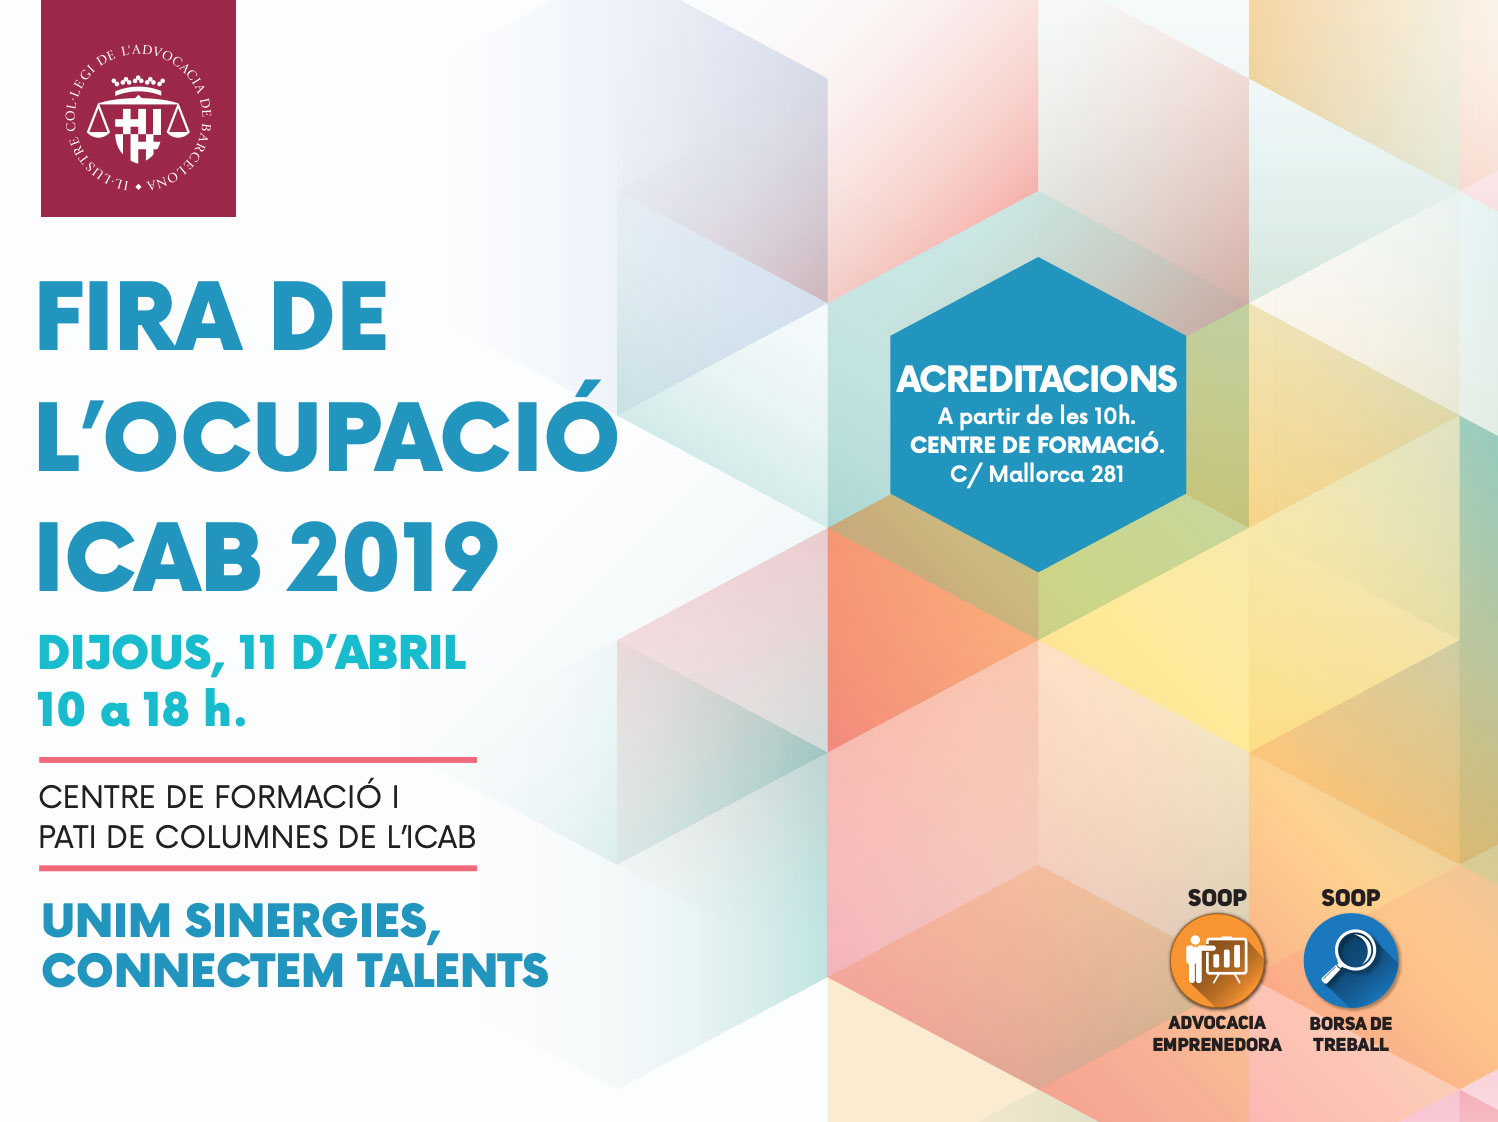 Augusta Abogados attends the Employment Fair organized by the Barcelona Bar Association